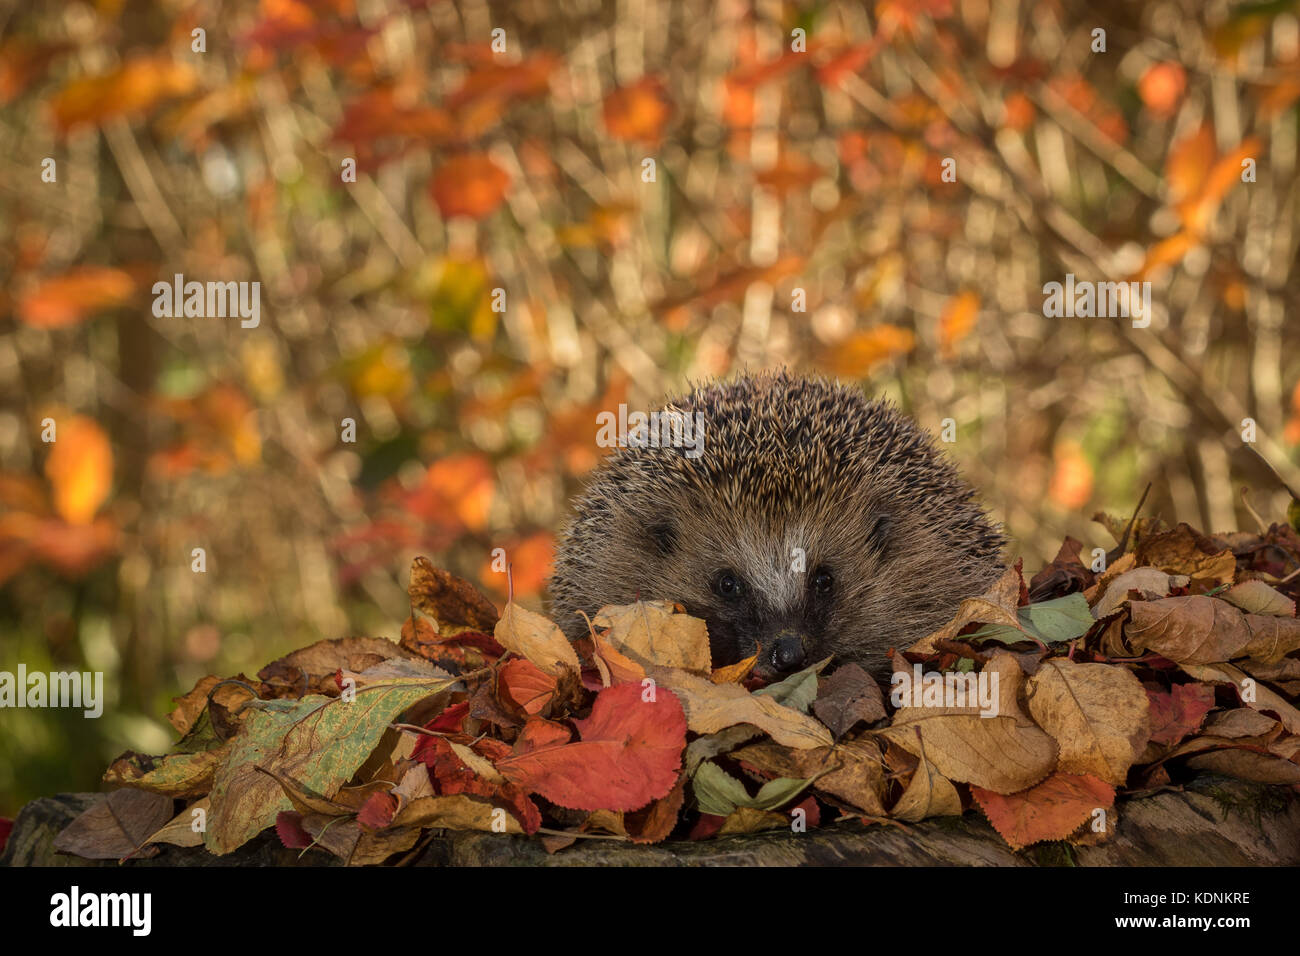 Wild European Hedgehog, Erinaceus europaeus, in colorful autumn leaves looking in camera - Stock Image